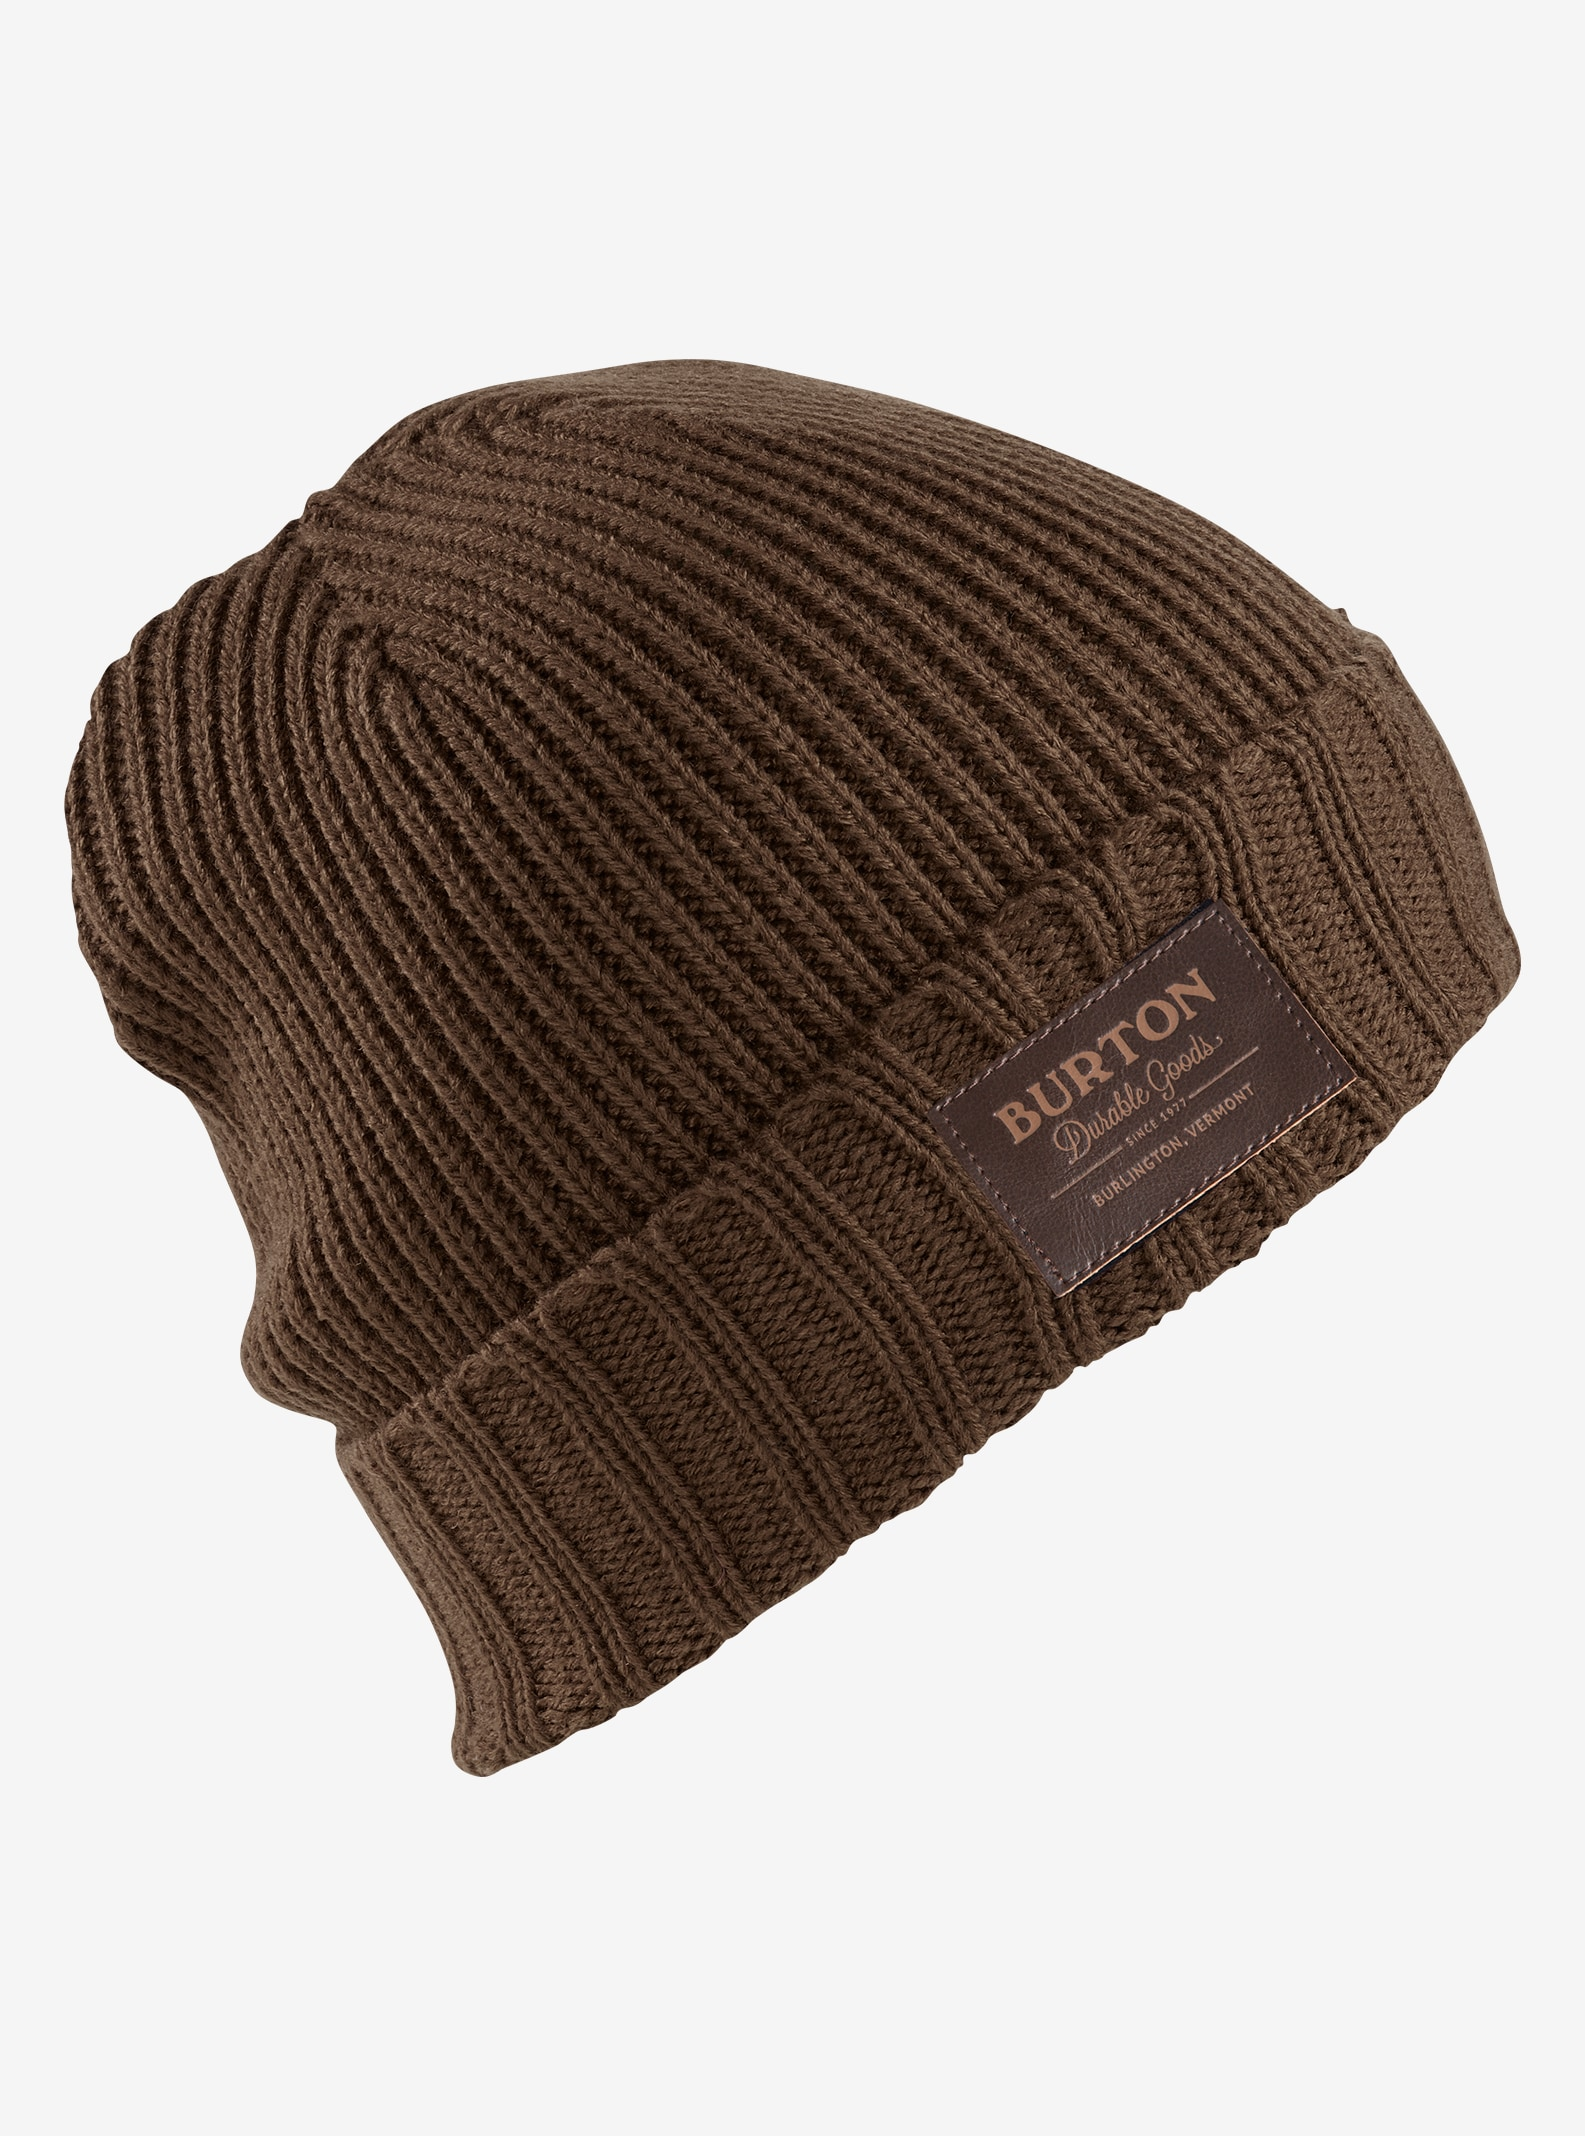 Men's Burton Gringo Beanie shown in Chestnut